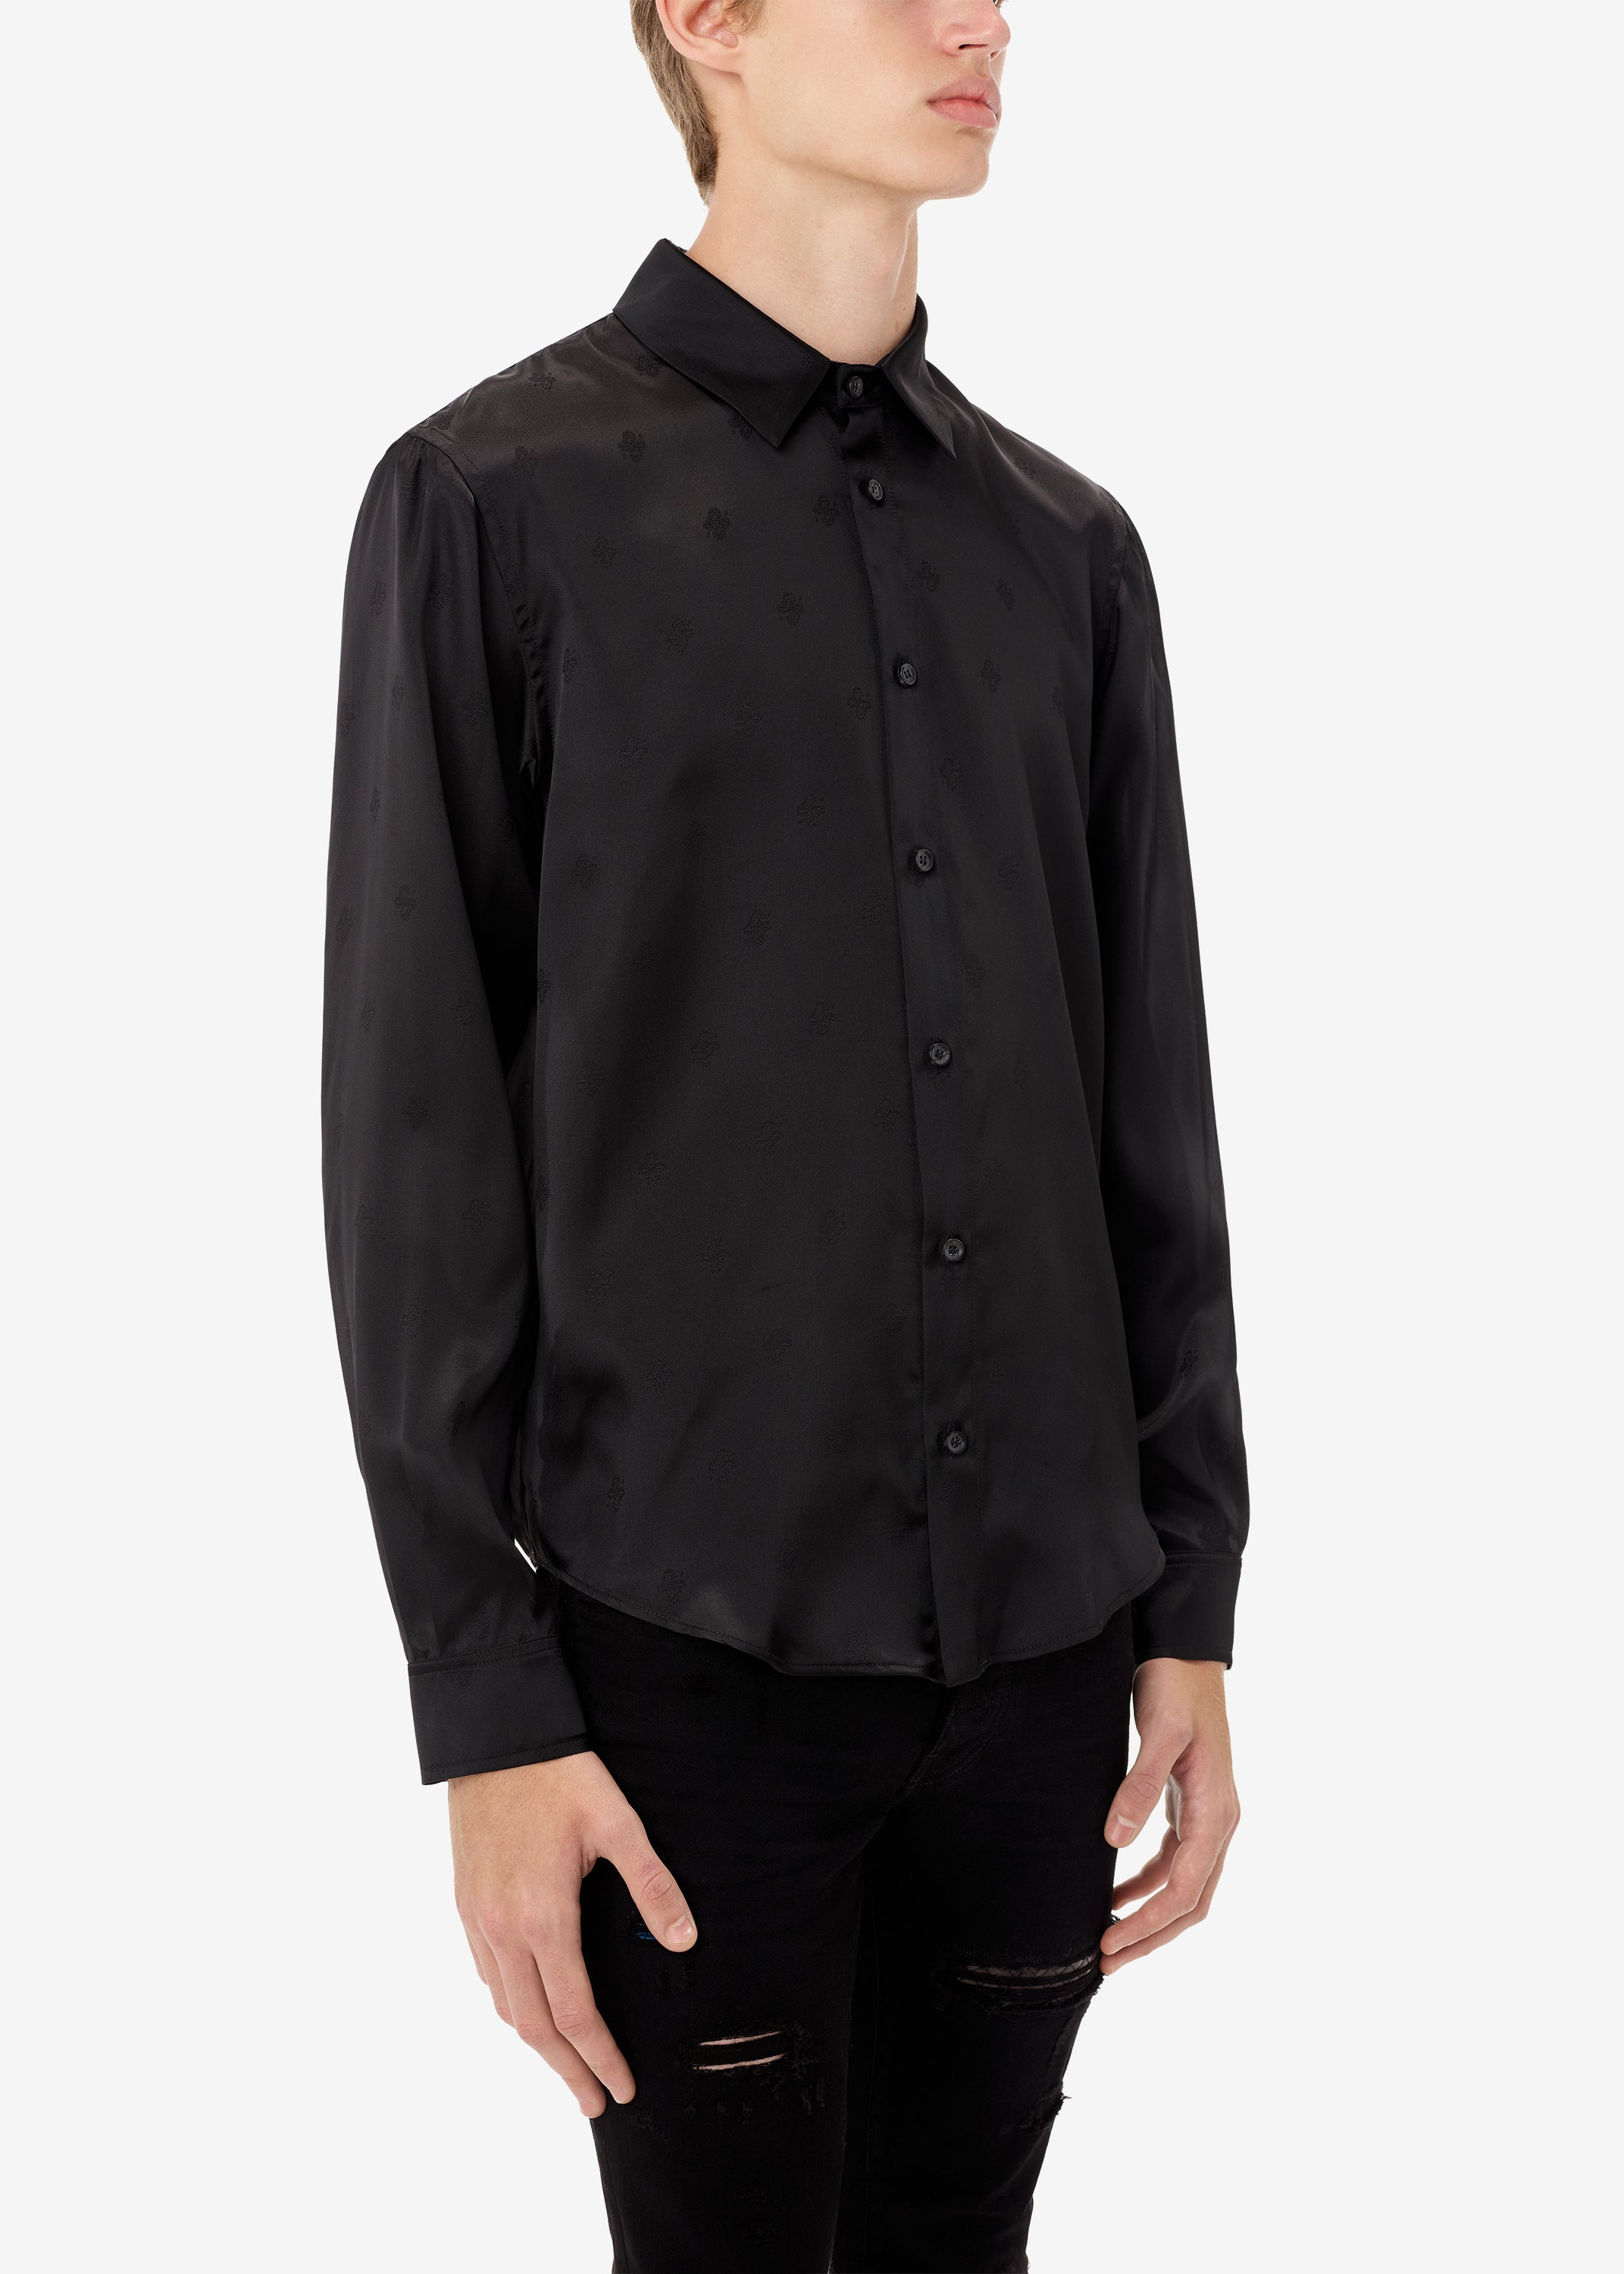 exclusive-micro-paisley-shirt-black-image-2